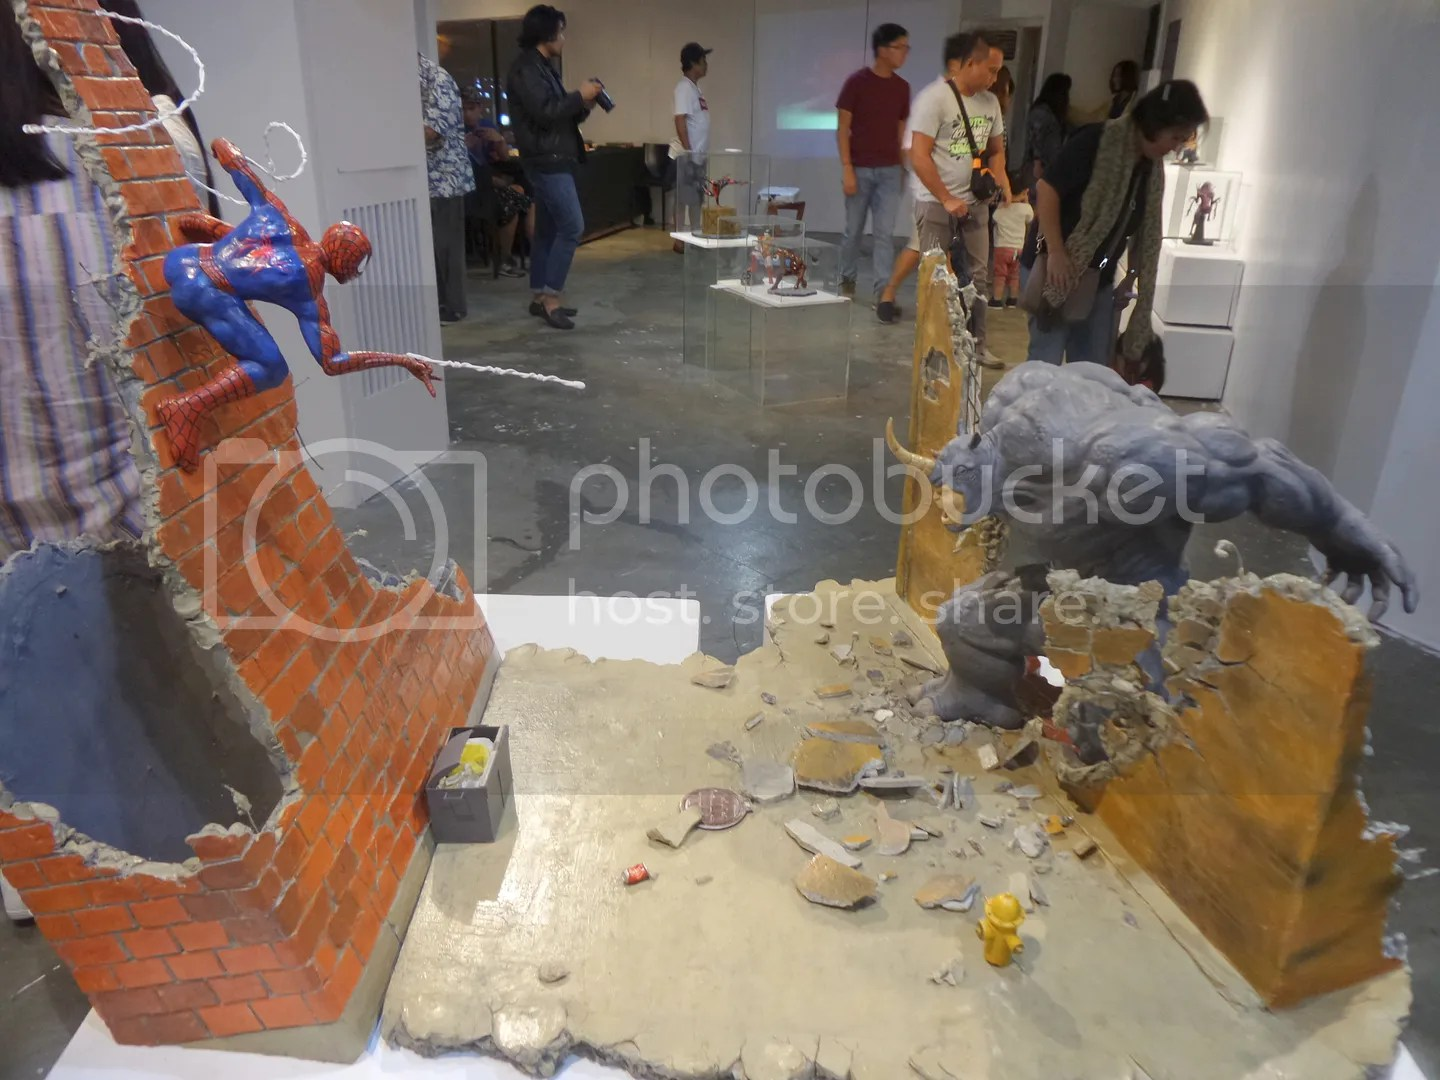 A fantastic battle scene is the highlight of the exhibit! The iconic fight between spider-man and The Rhino!